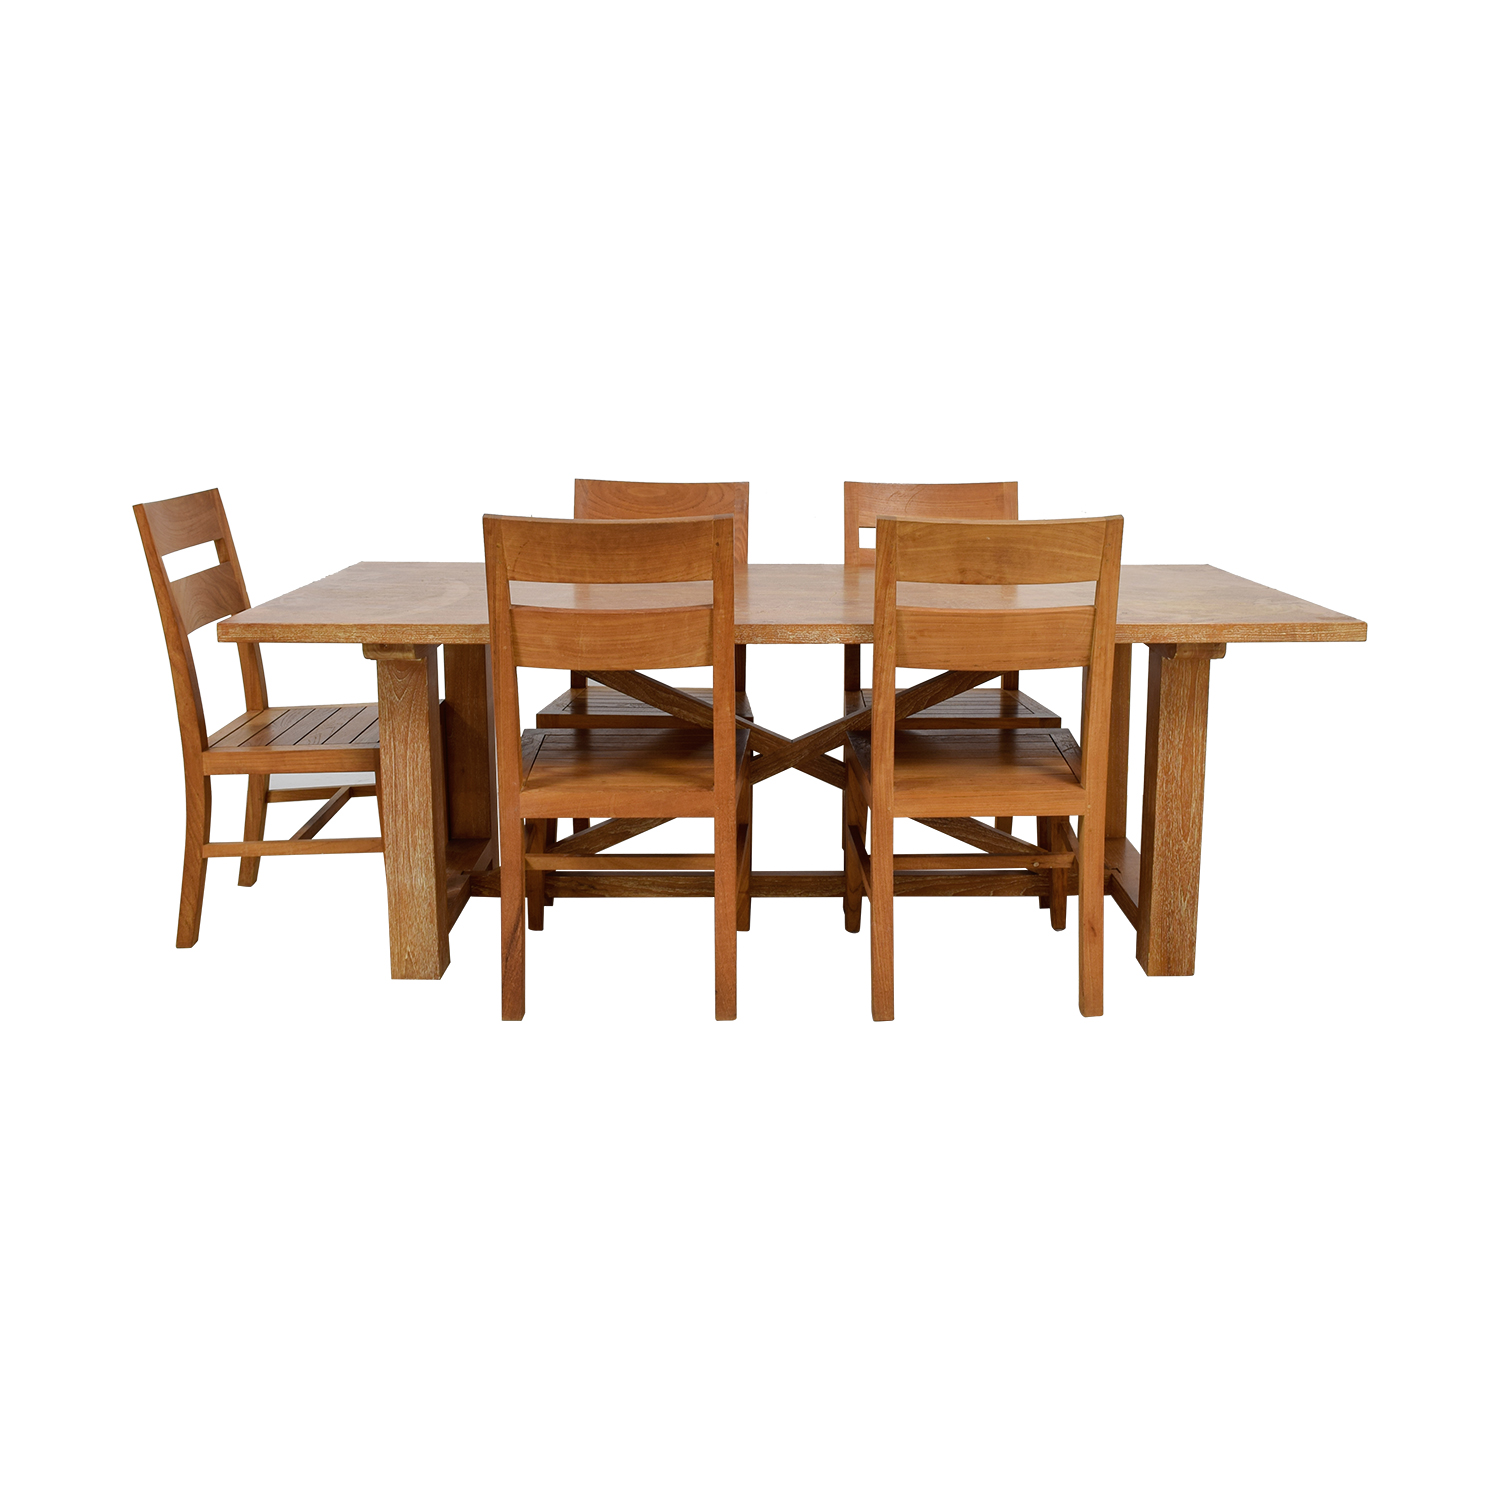 buy Crate & Barrel Crate & Barrel Teak Wood Dining Set online